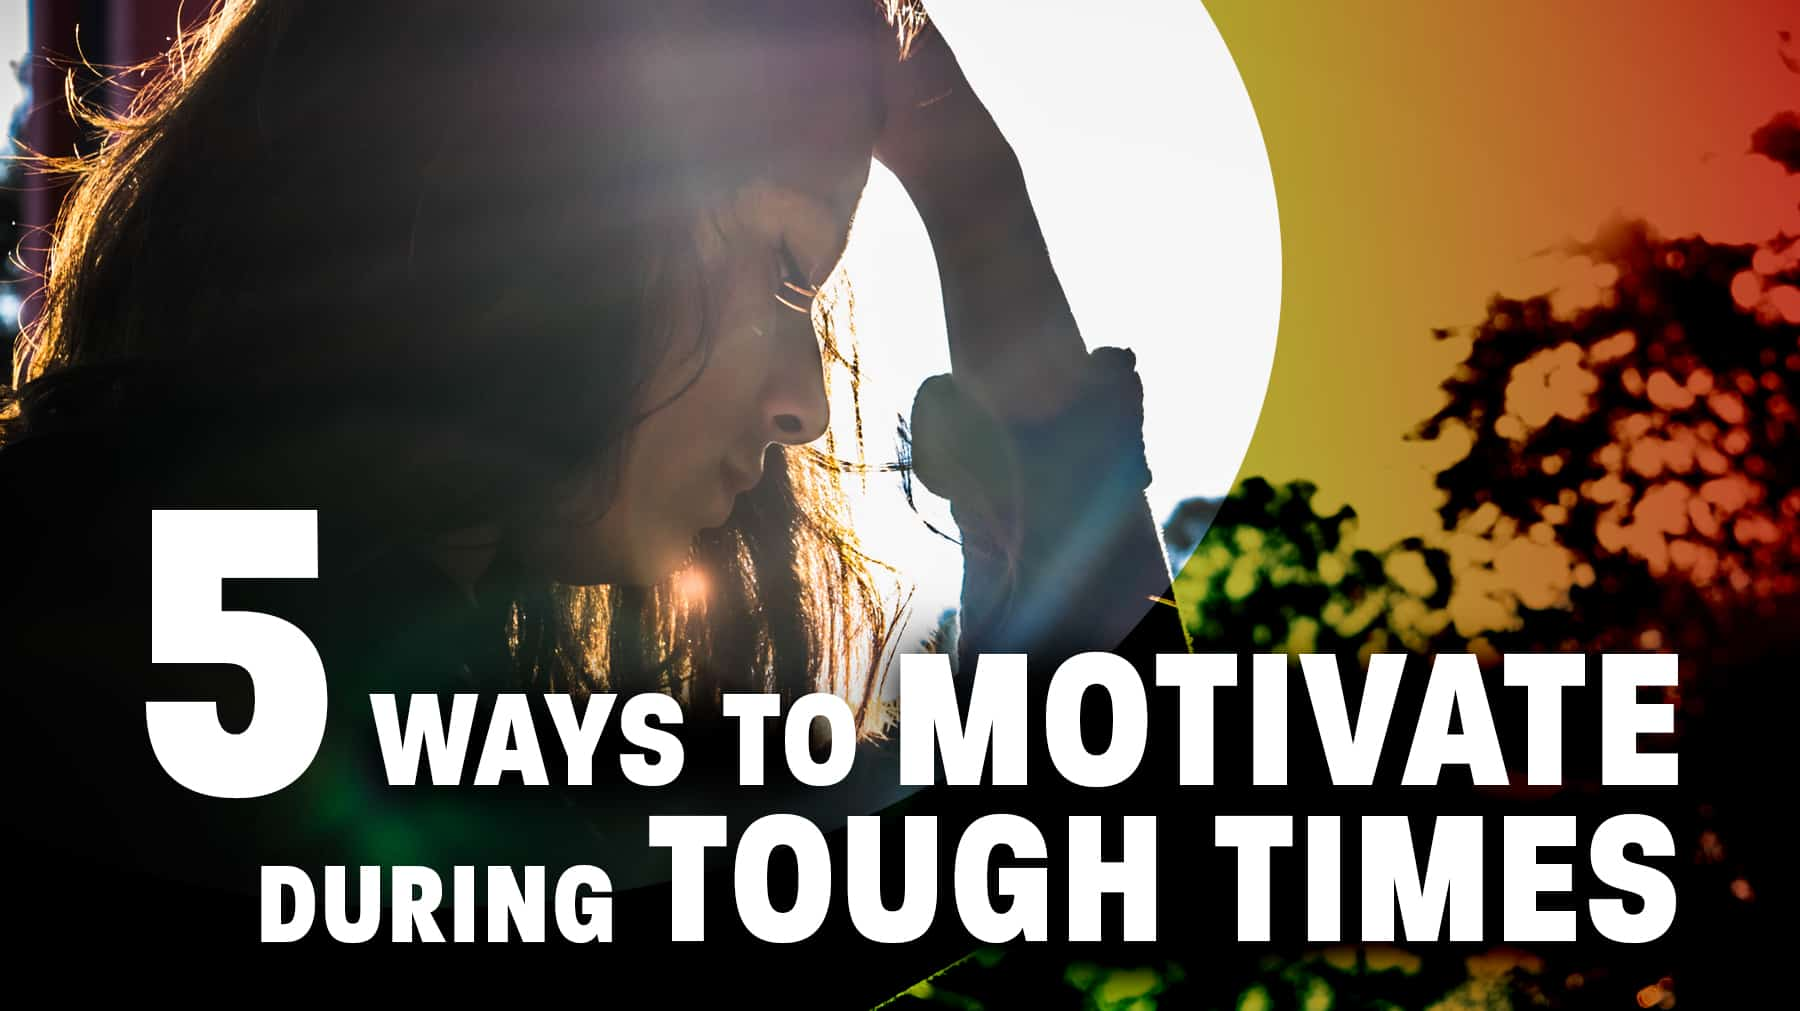 5 ways to motivate during tough times